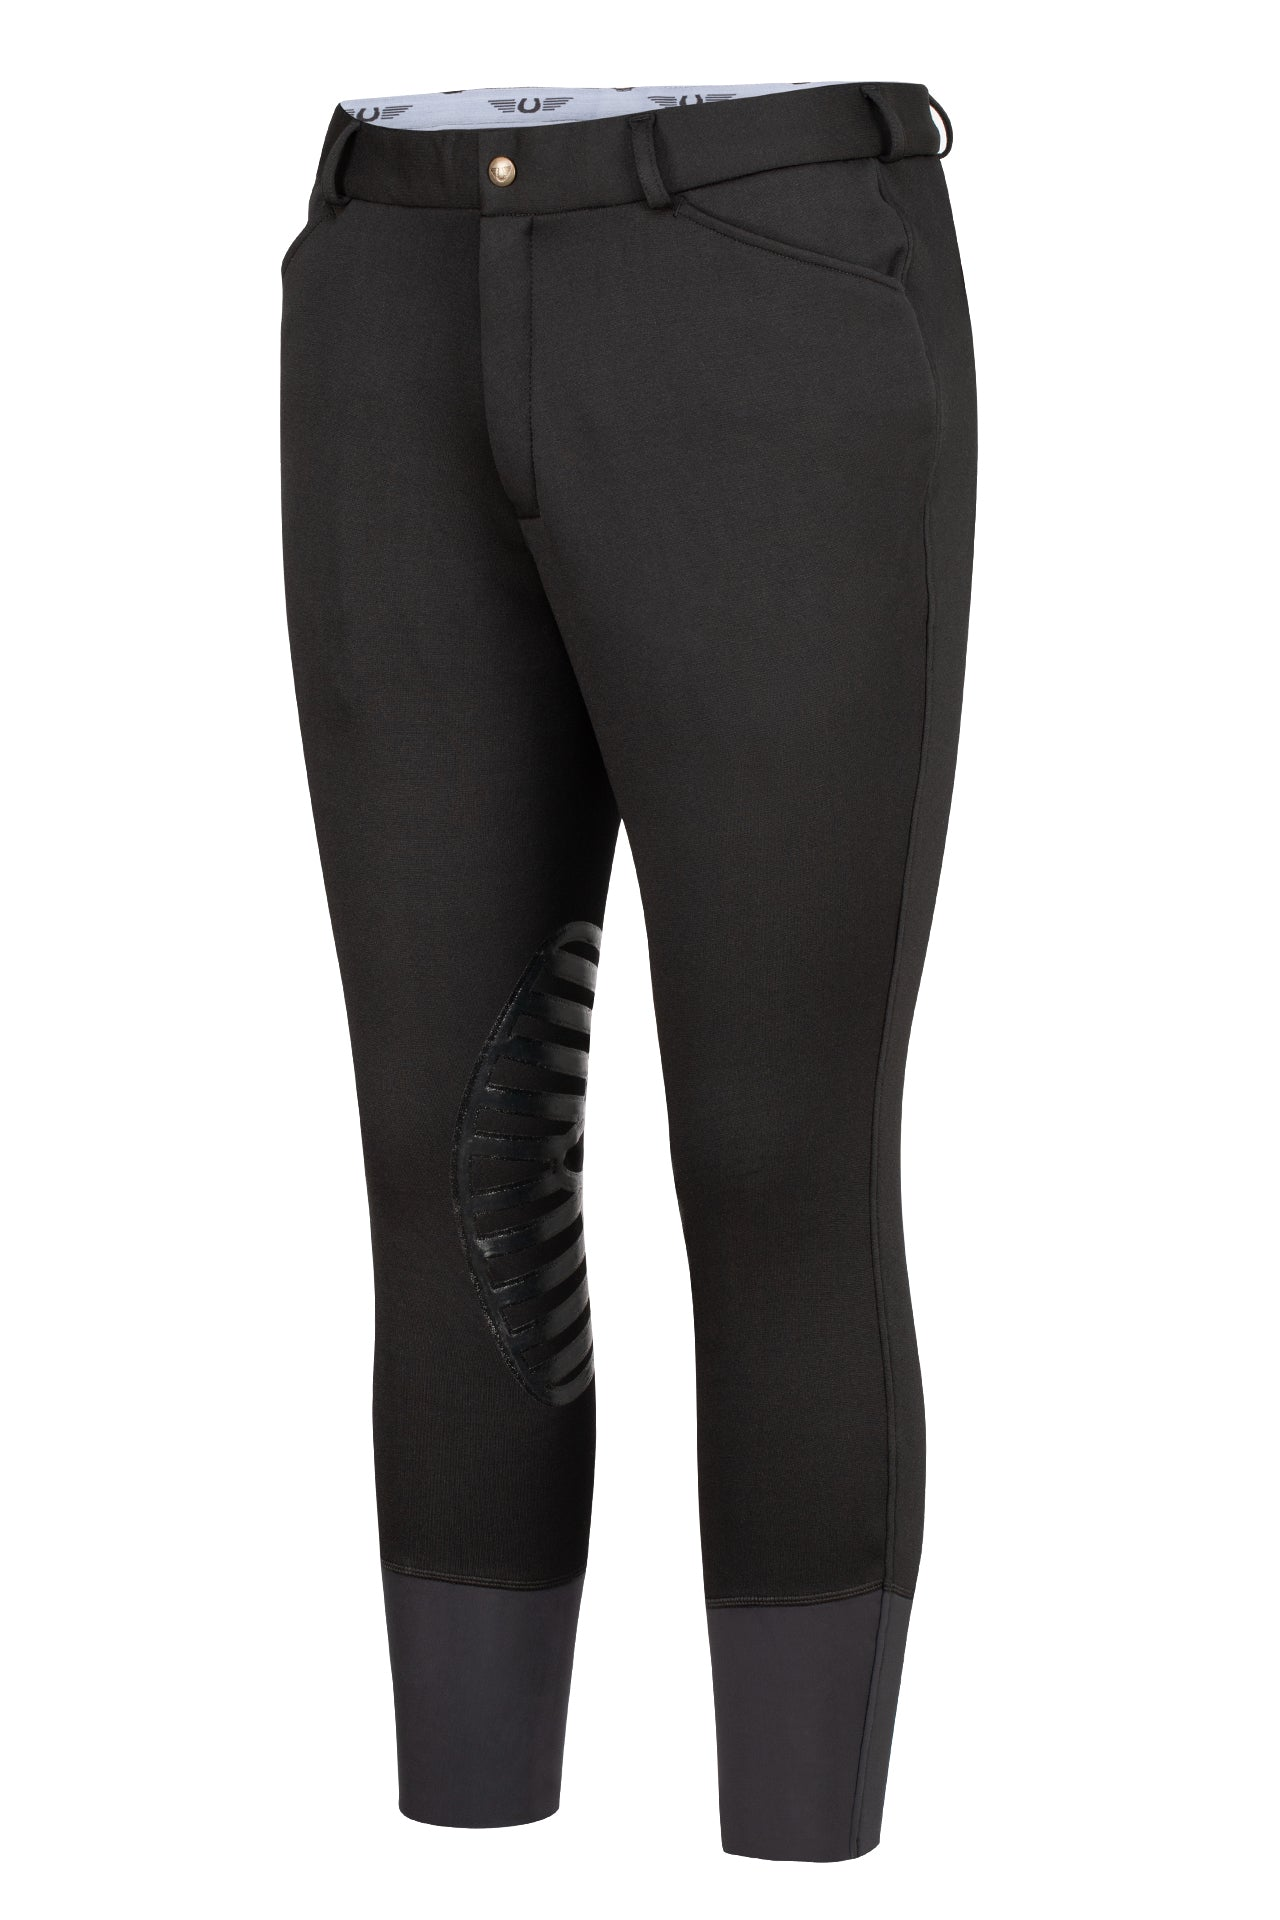 TuffRider Men's Patrol Unifleece Breeches - TuffRider - Breeches.com